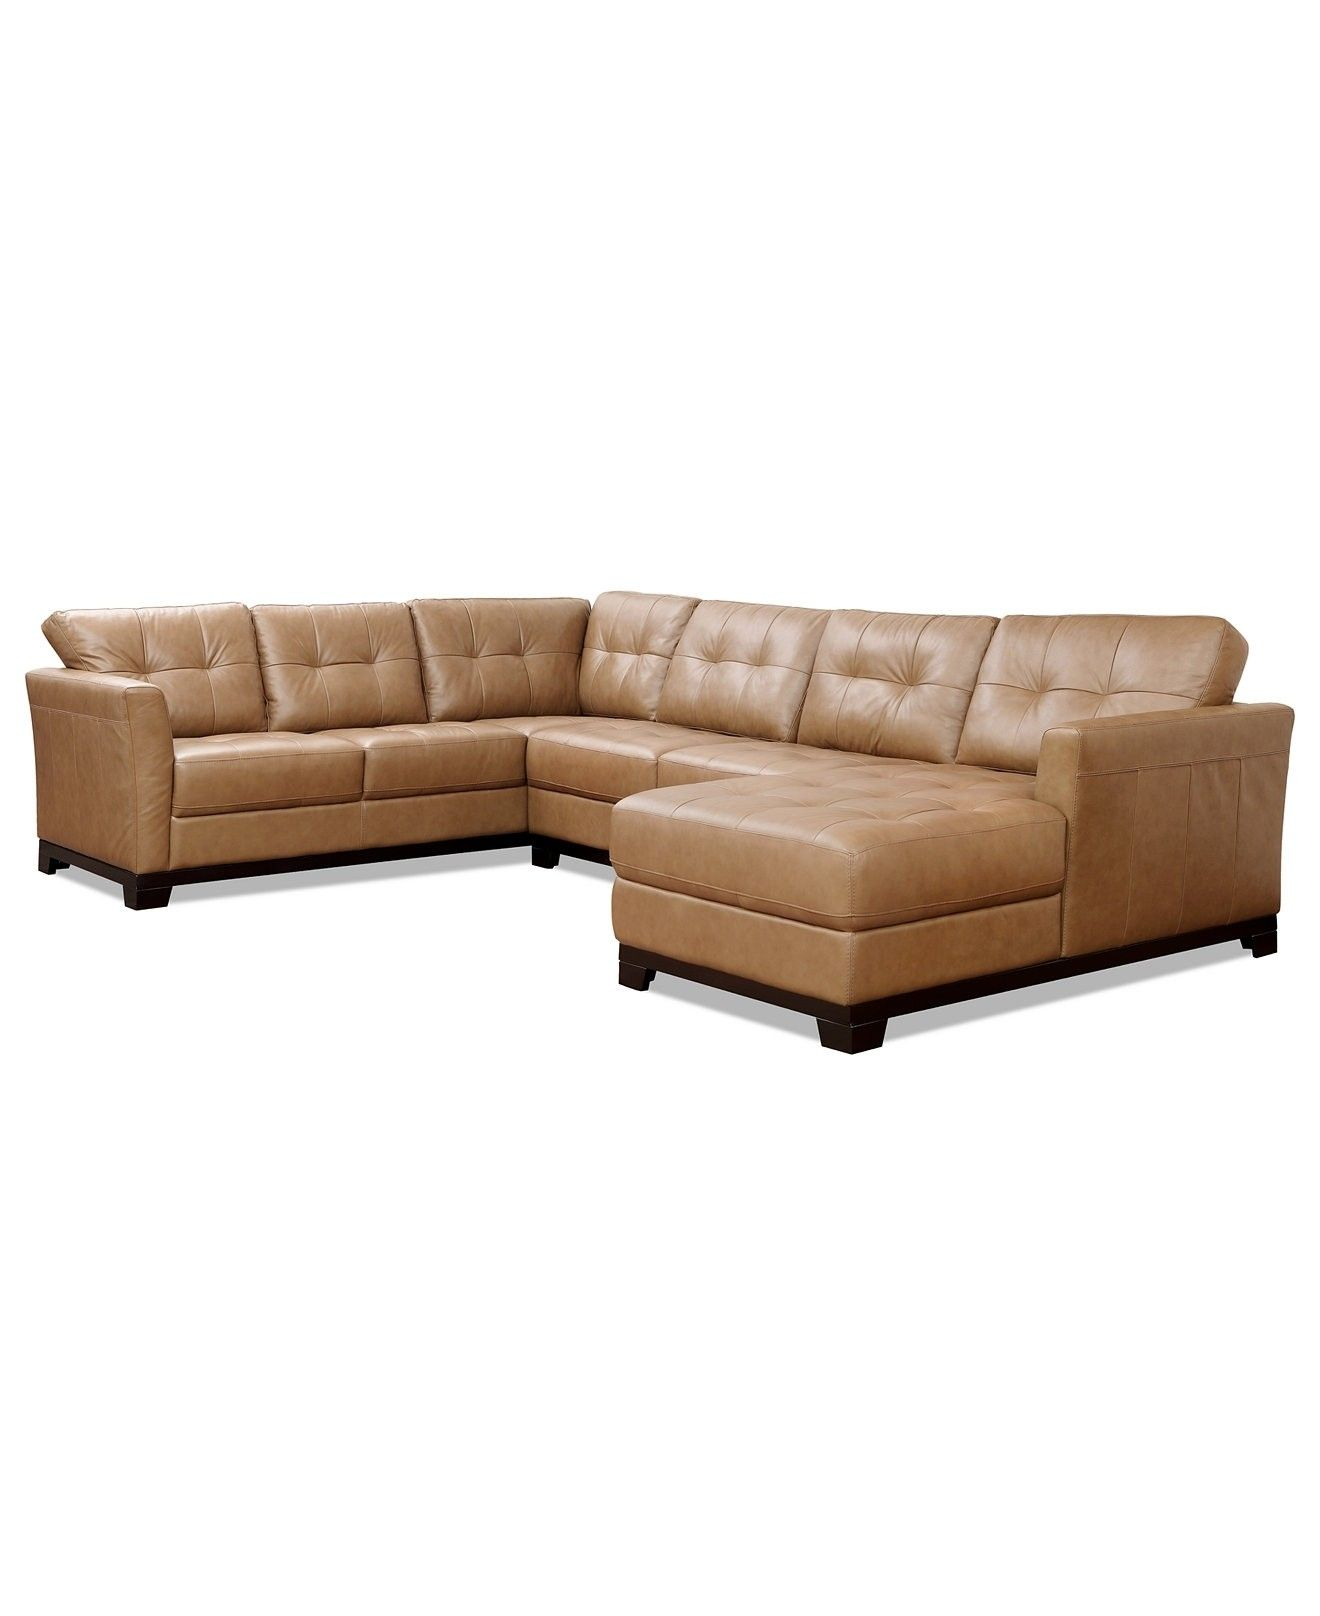 Awesome Macys Leather Sectional Sofa Leather S Macy S Milano